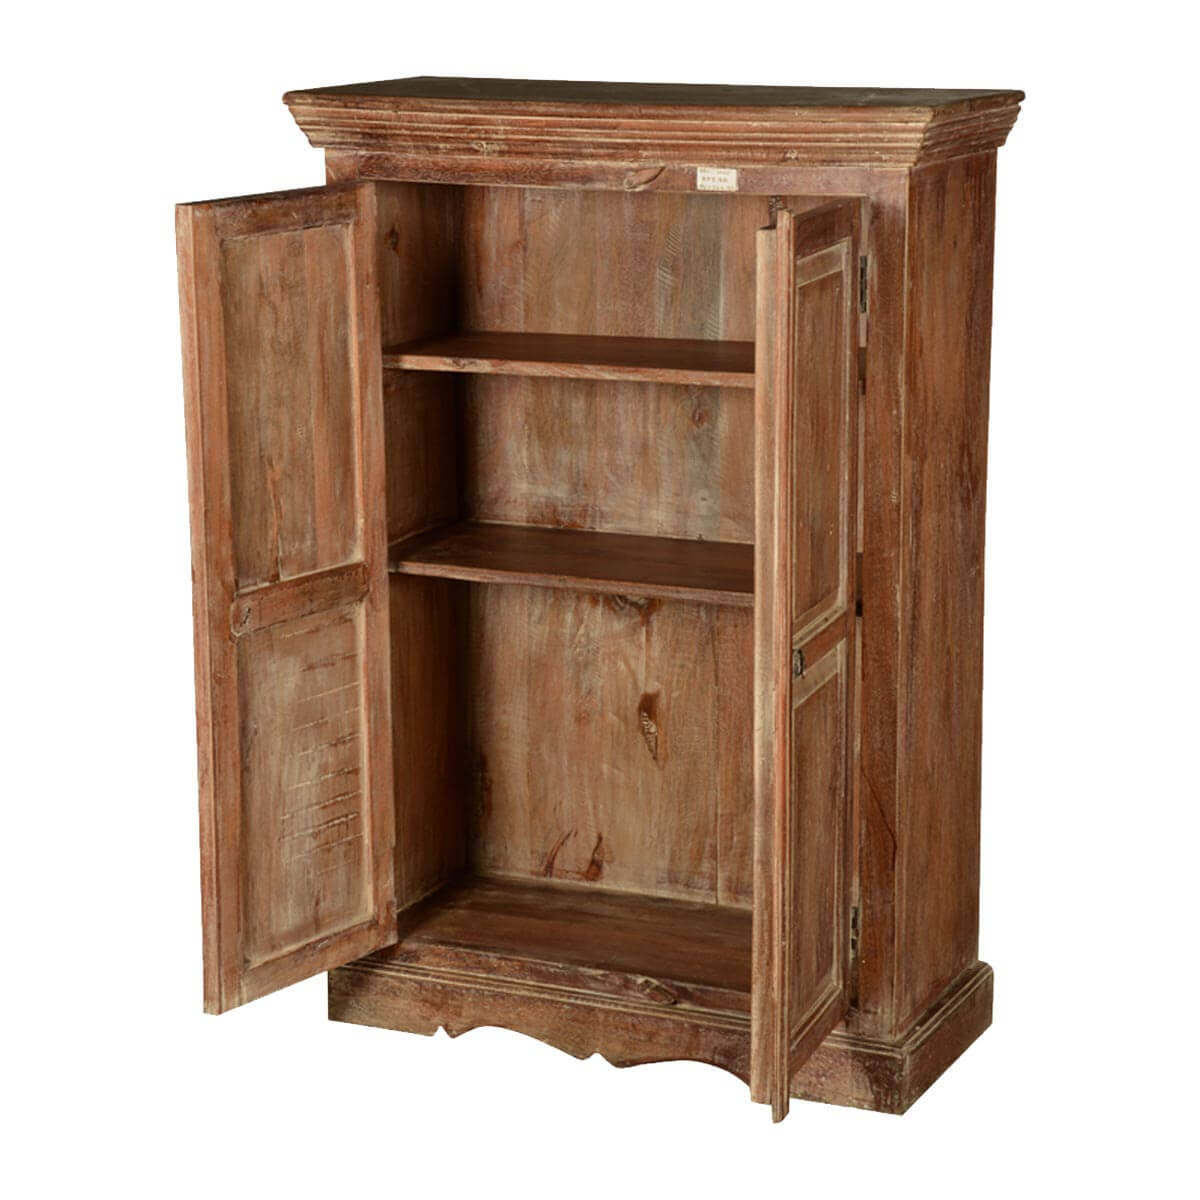 How To Restore Wooden Cabinet Almirah Beds